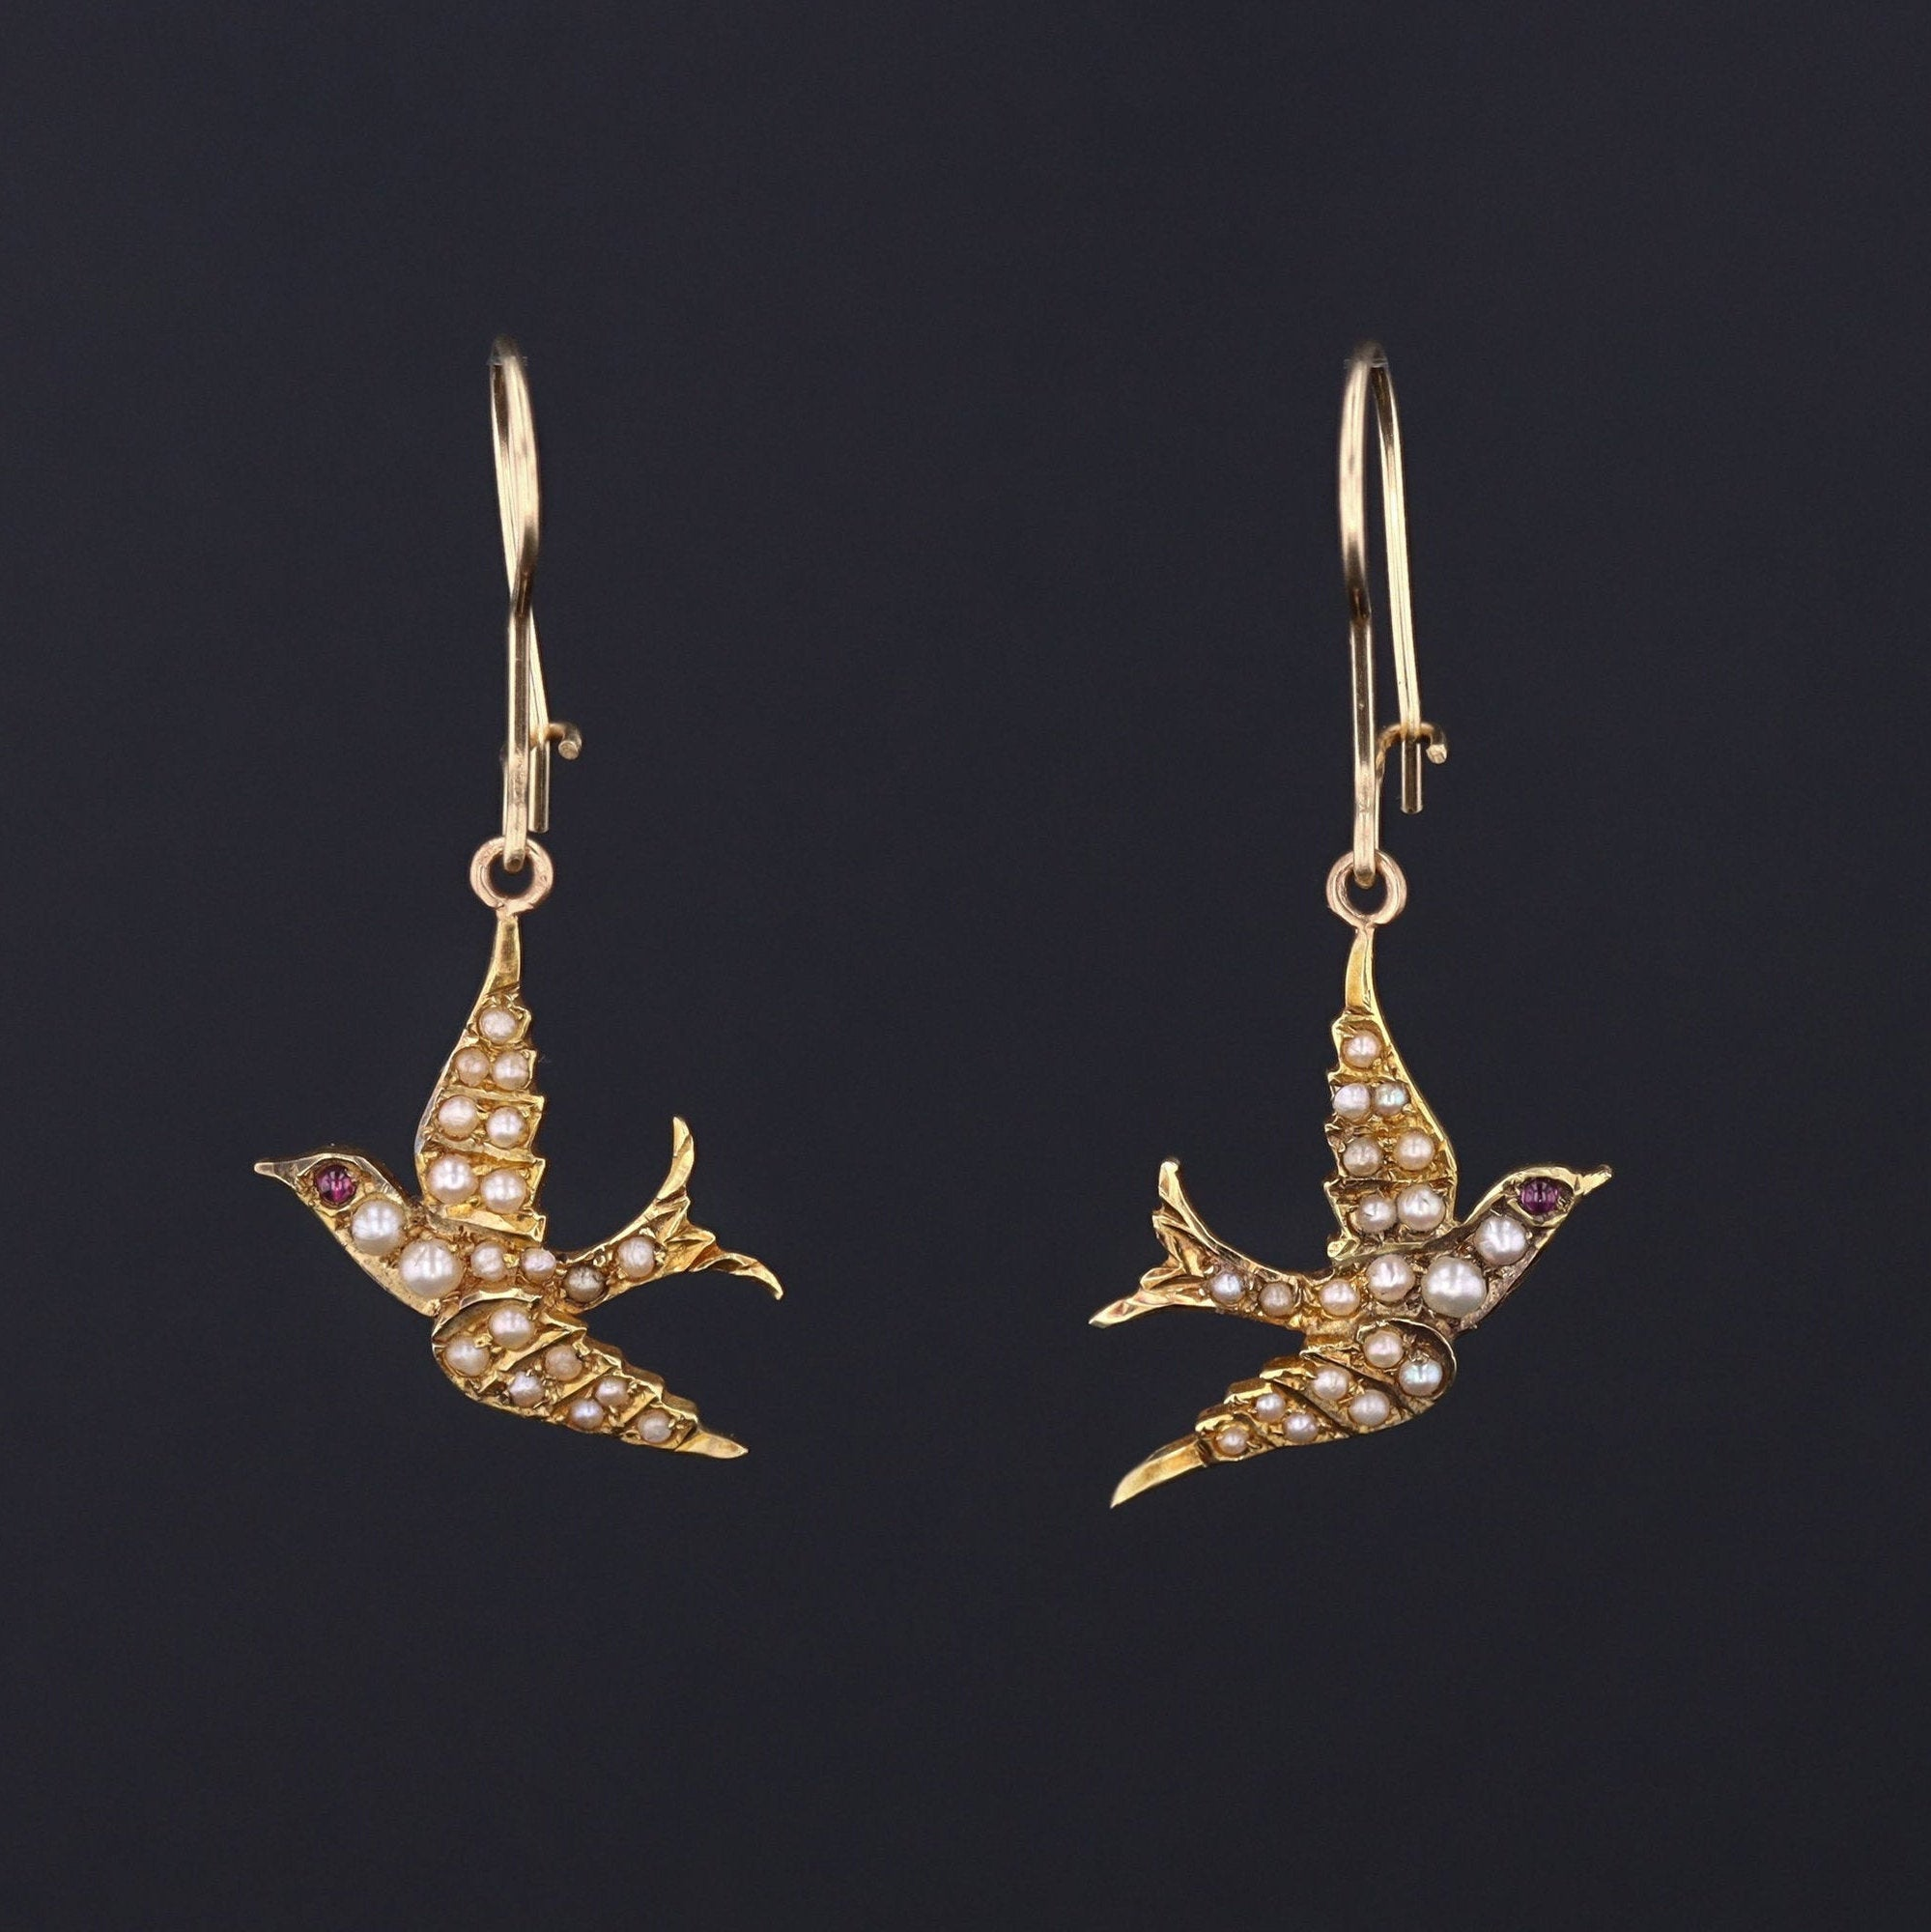 Pearl Swallow Earrings | 14k Gold Swallow Bird Earrings | Antique Pin Conversion Earrings | Dangle Earrings | Bridal Earrings